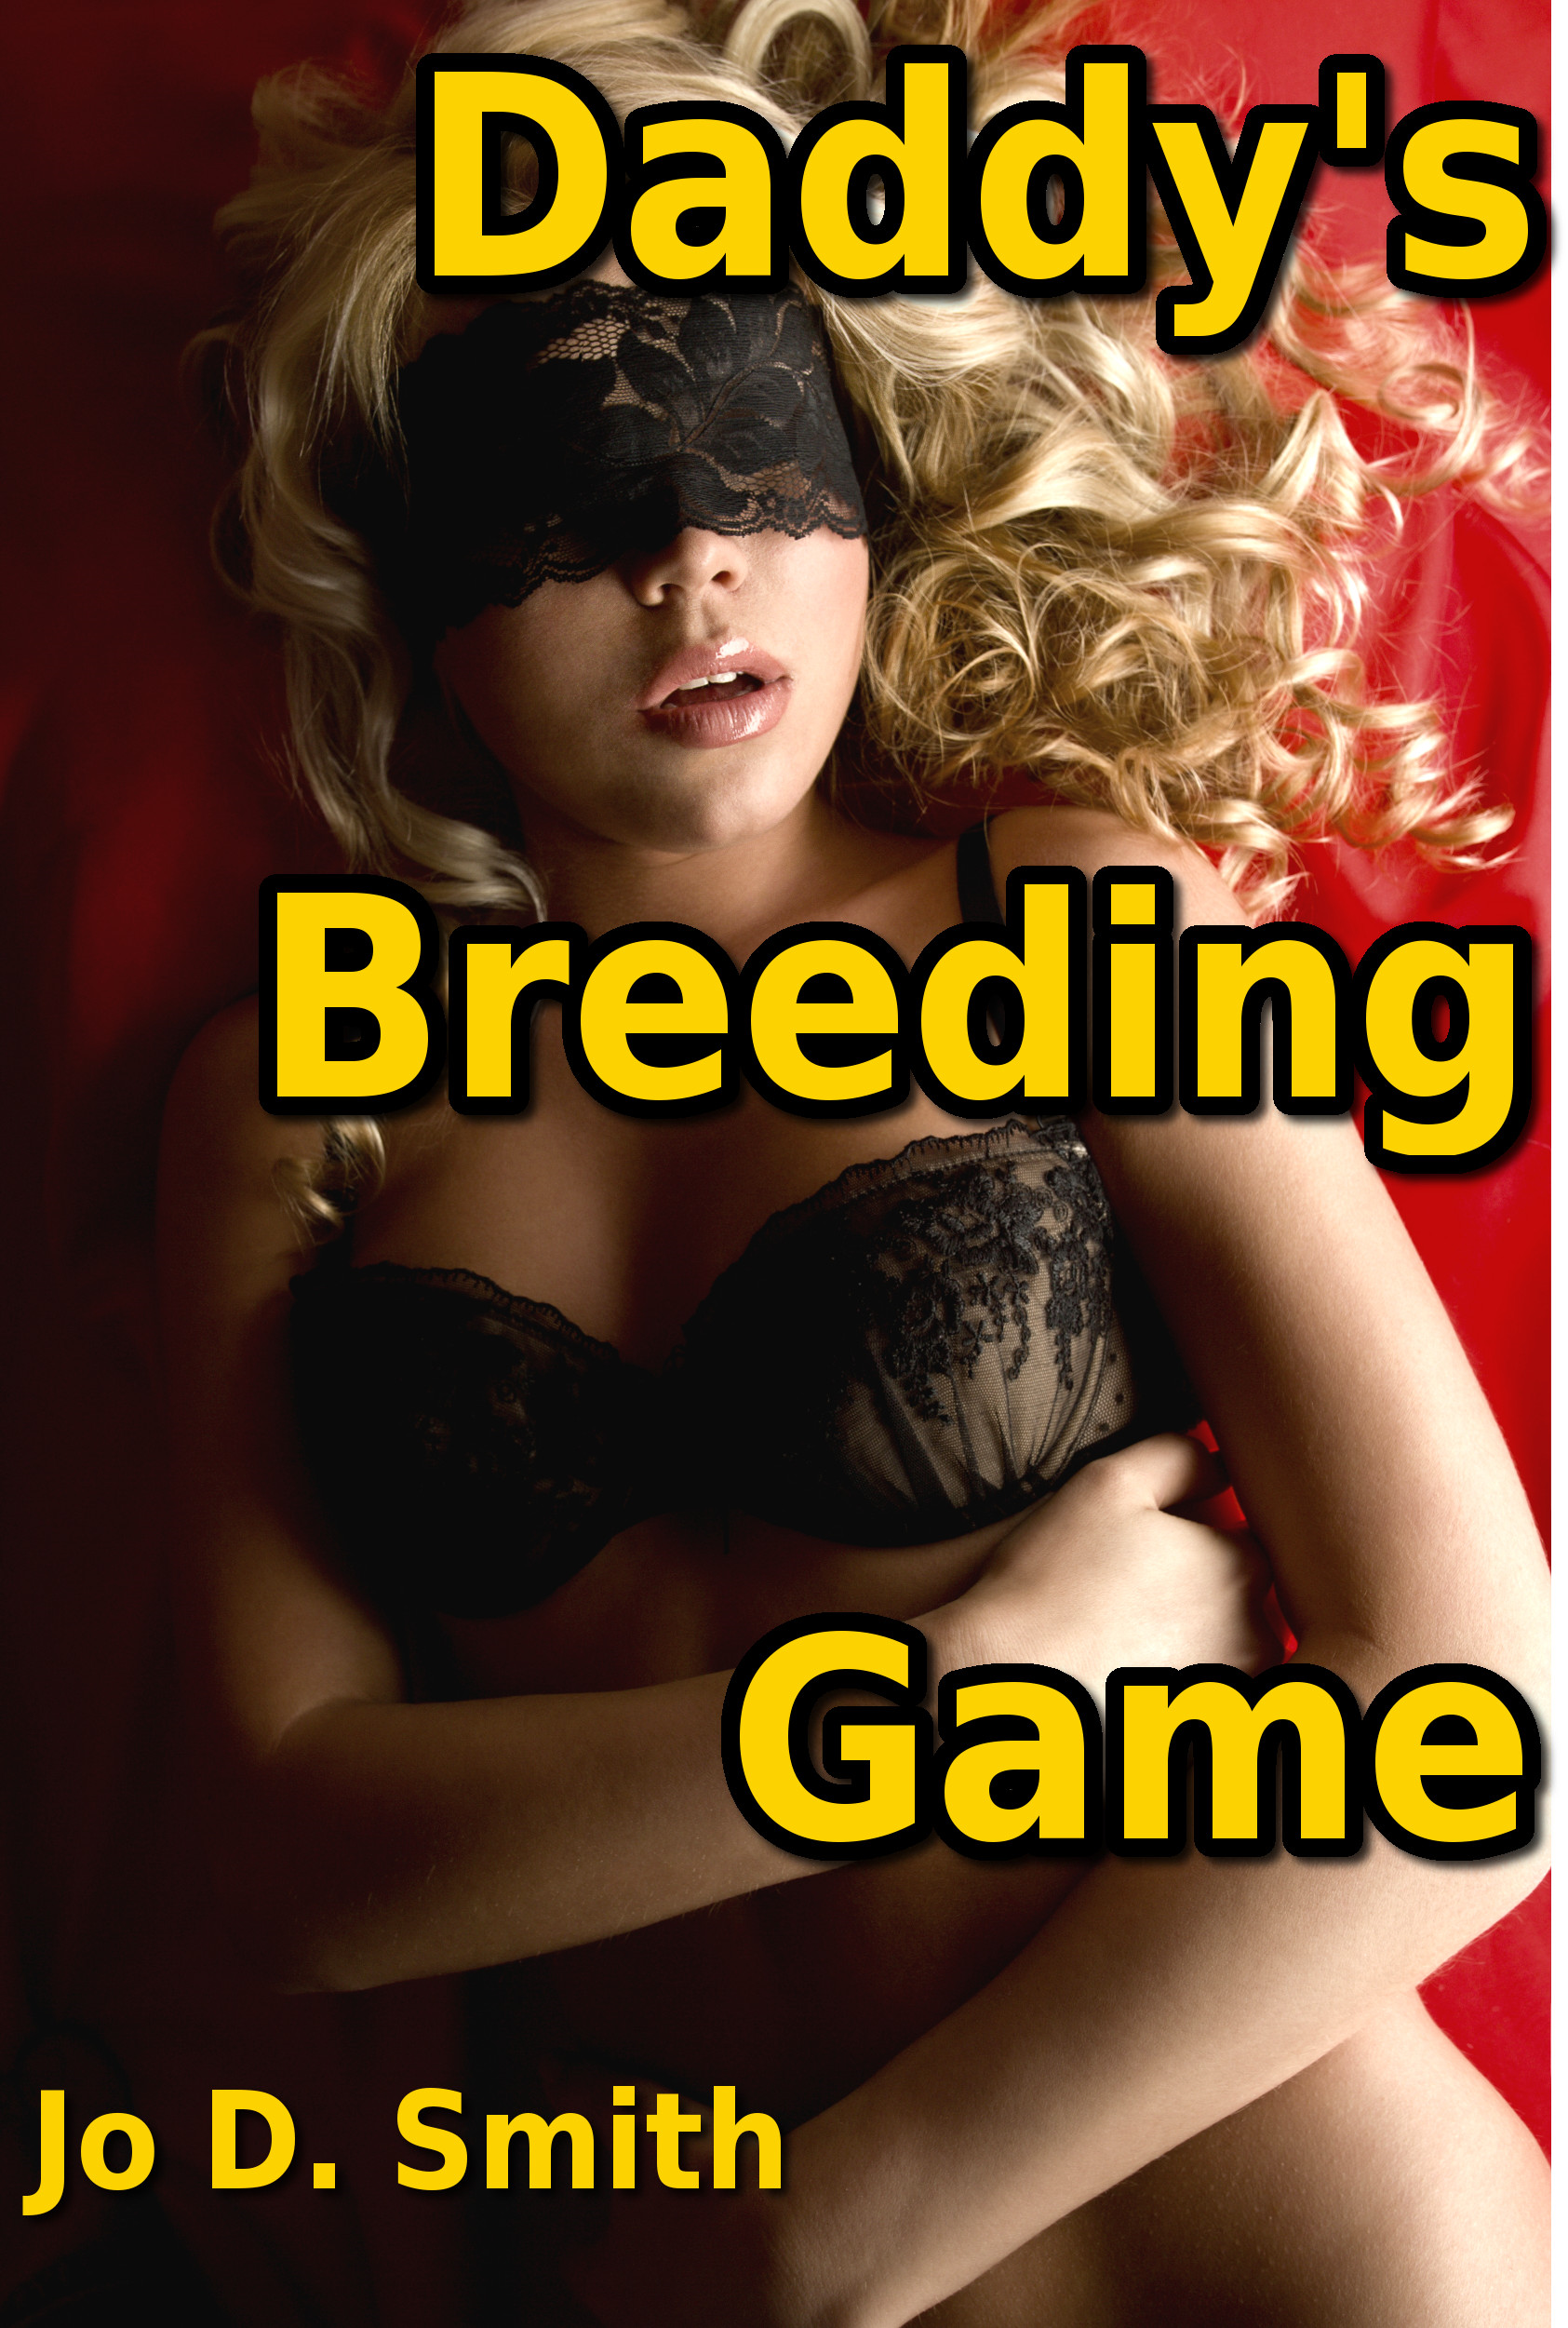 Daddy's Breeding Game (Taboo Impregnation Erotica)